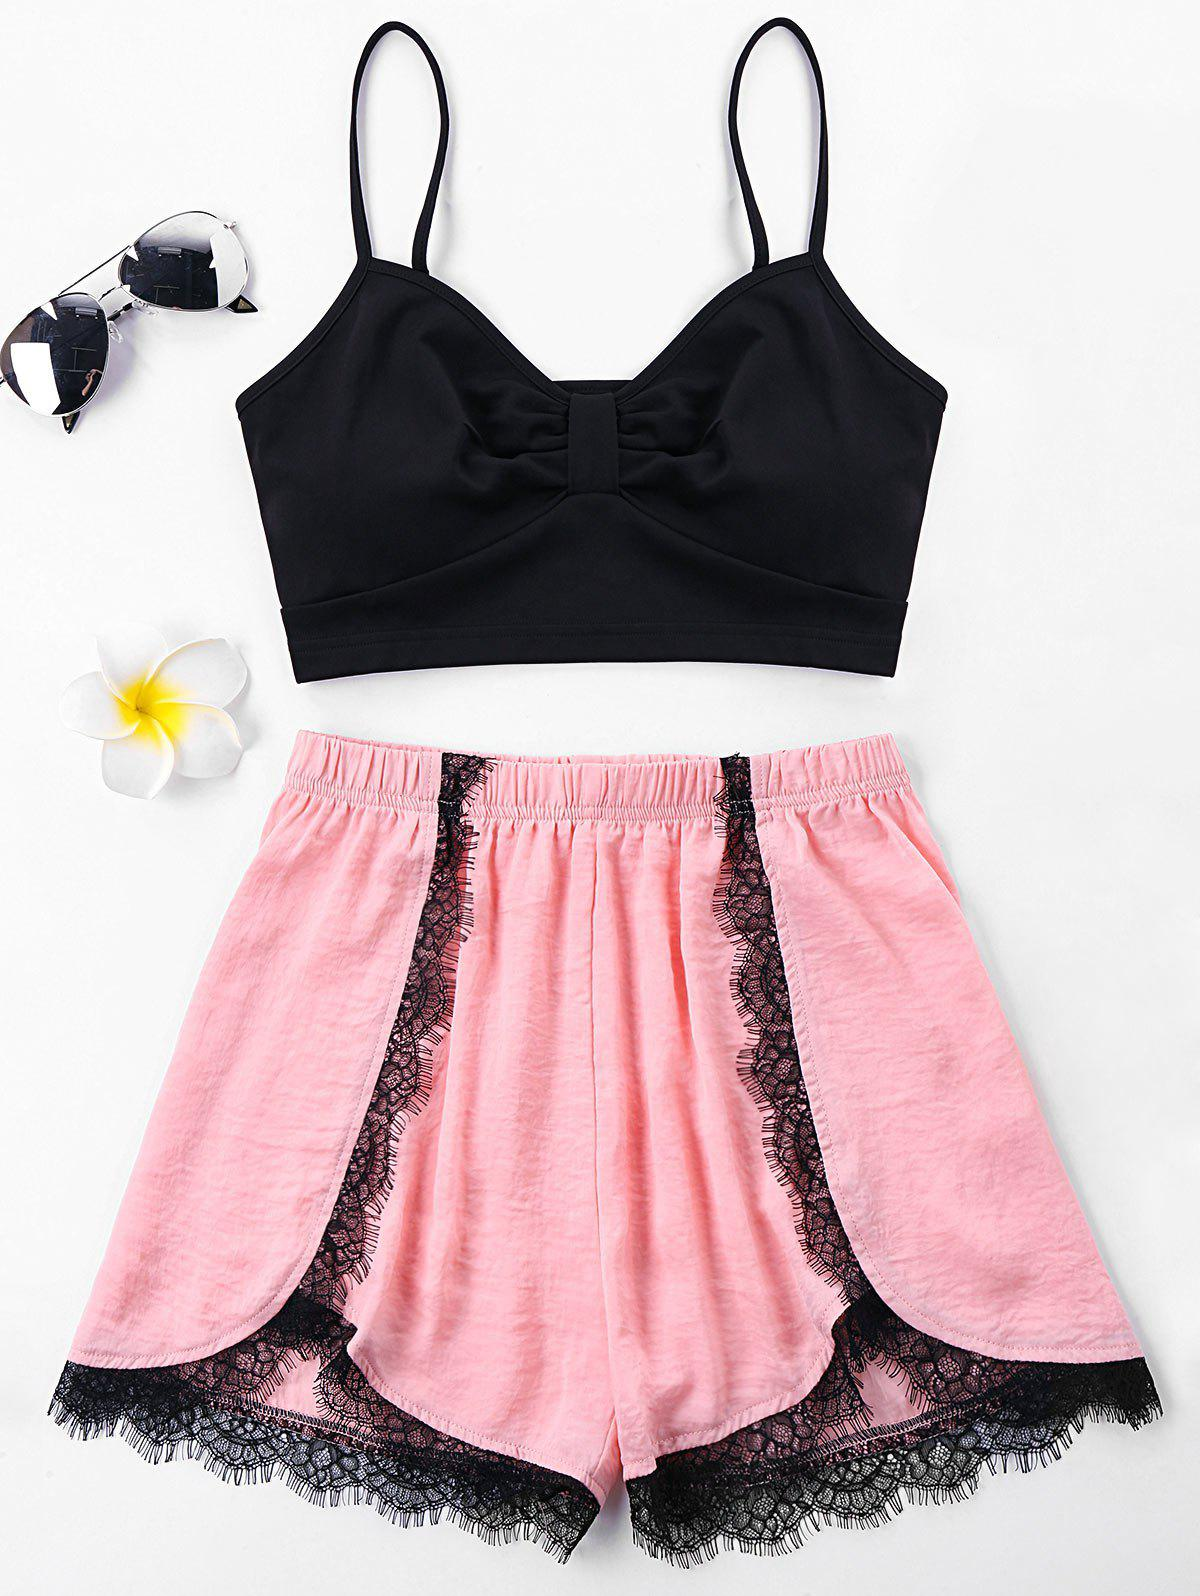 Hot Lace Insert Two Piece Outfits